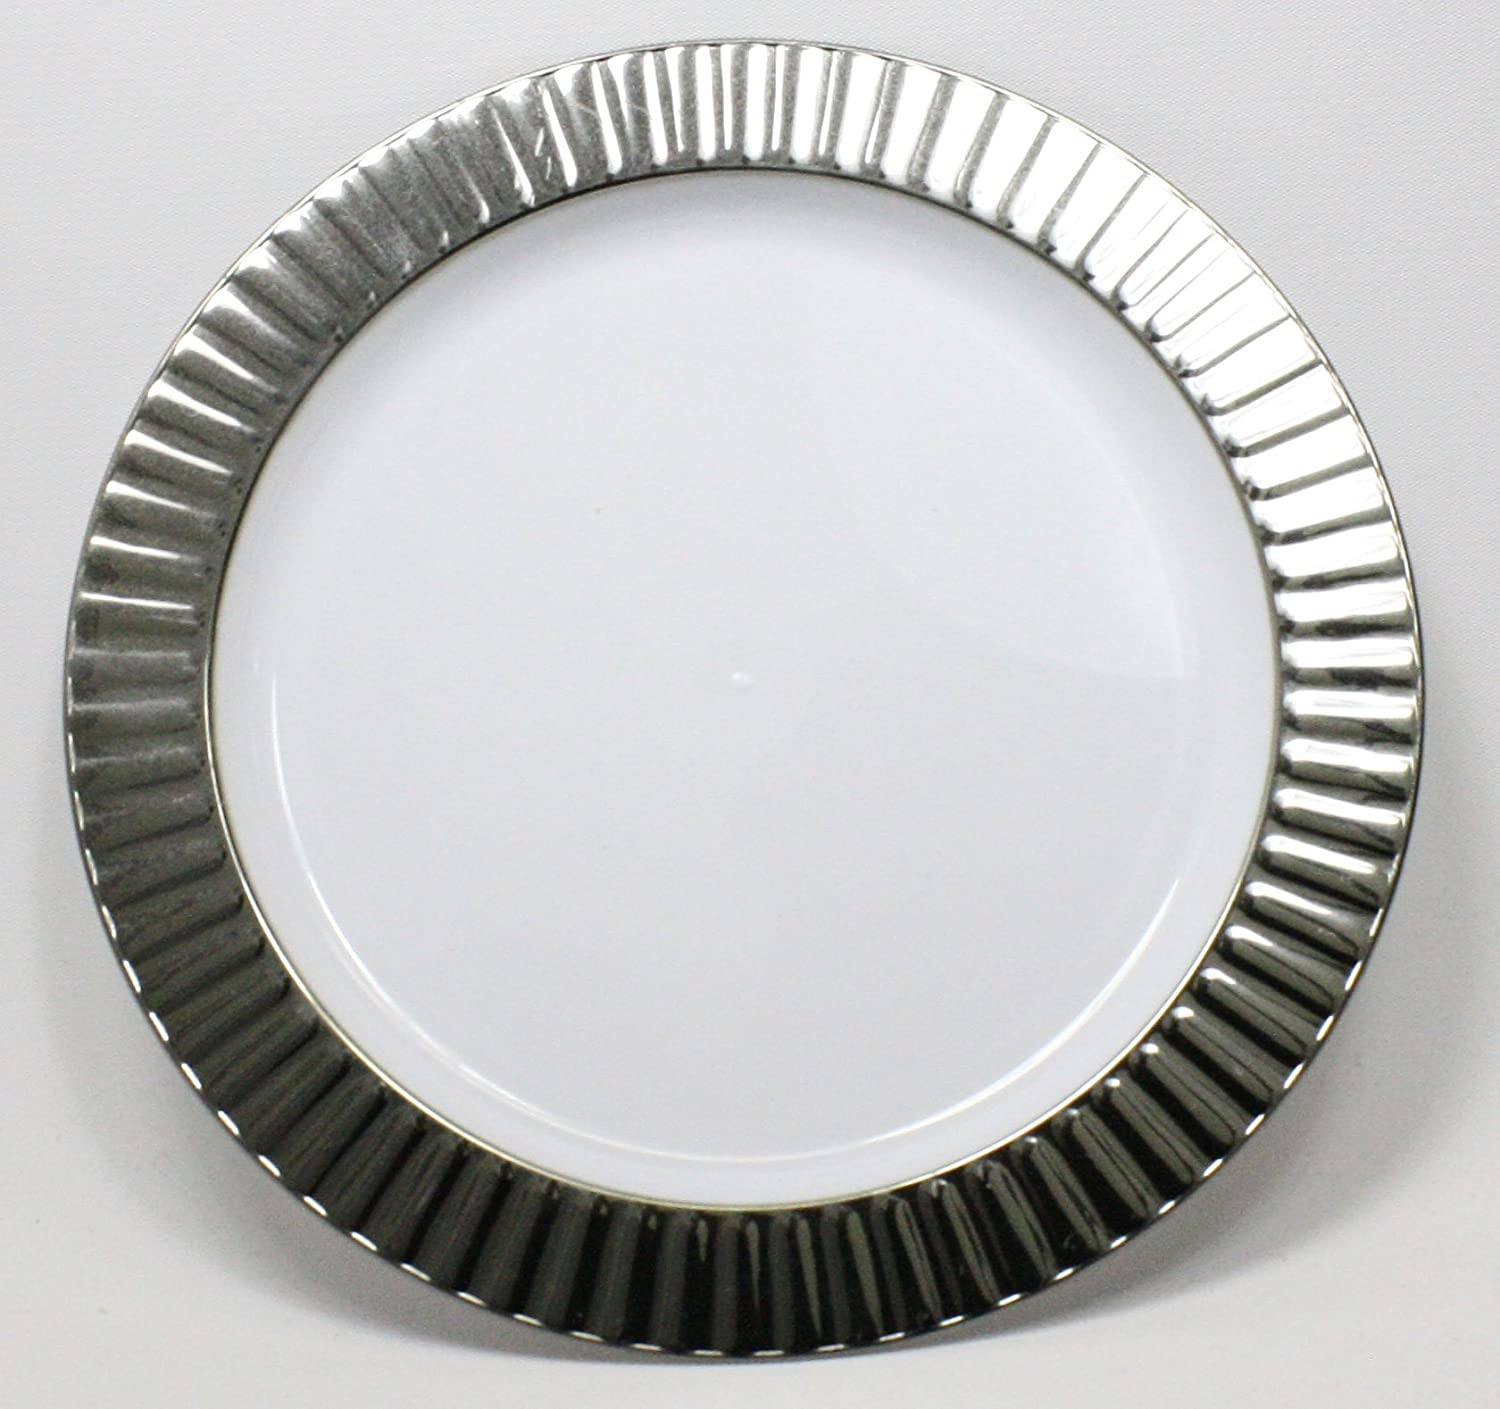 Amazon.com Celebration Dinner Plate \u2013 10.25\u201d (Case of 100) Kitchen \u0026 Dining : elegant plastic wedding plates - pezcame.com